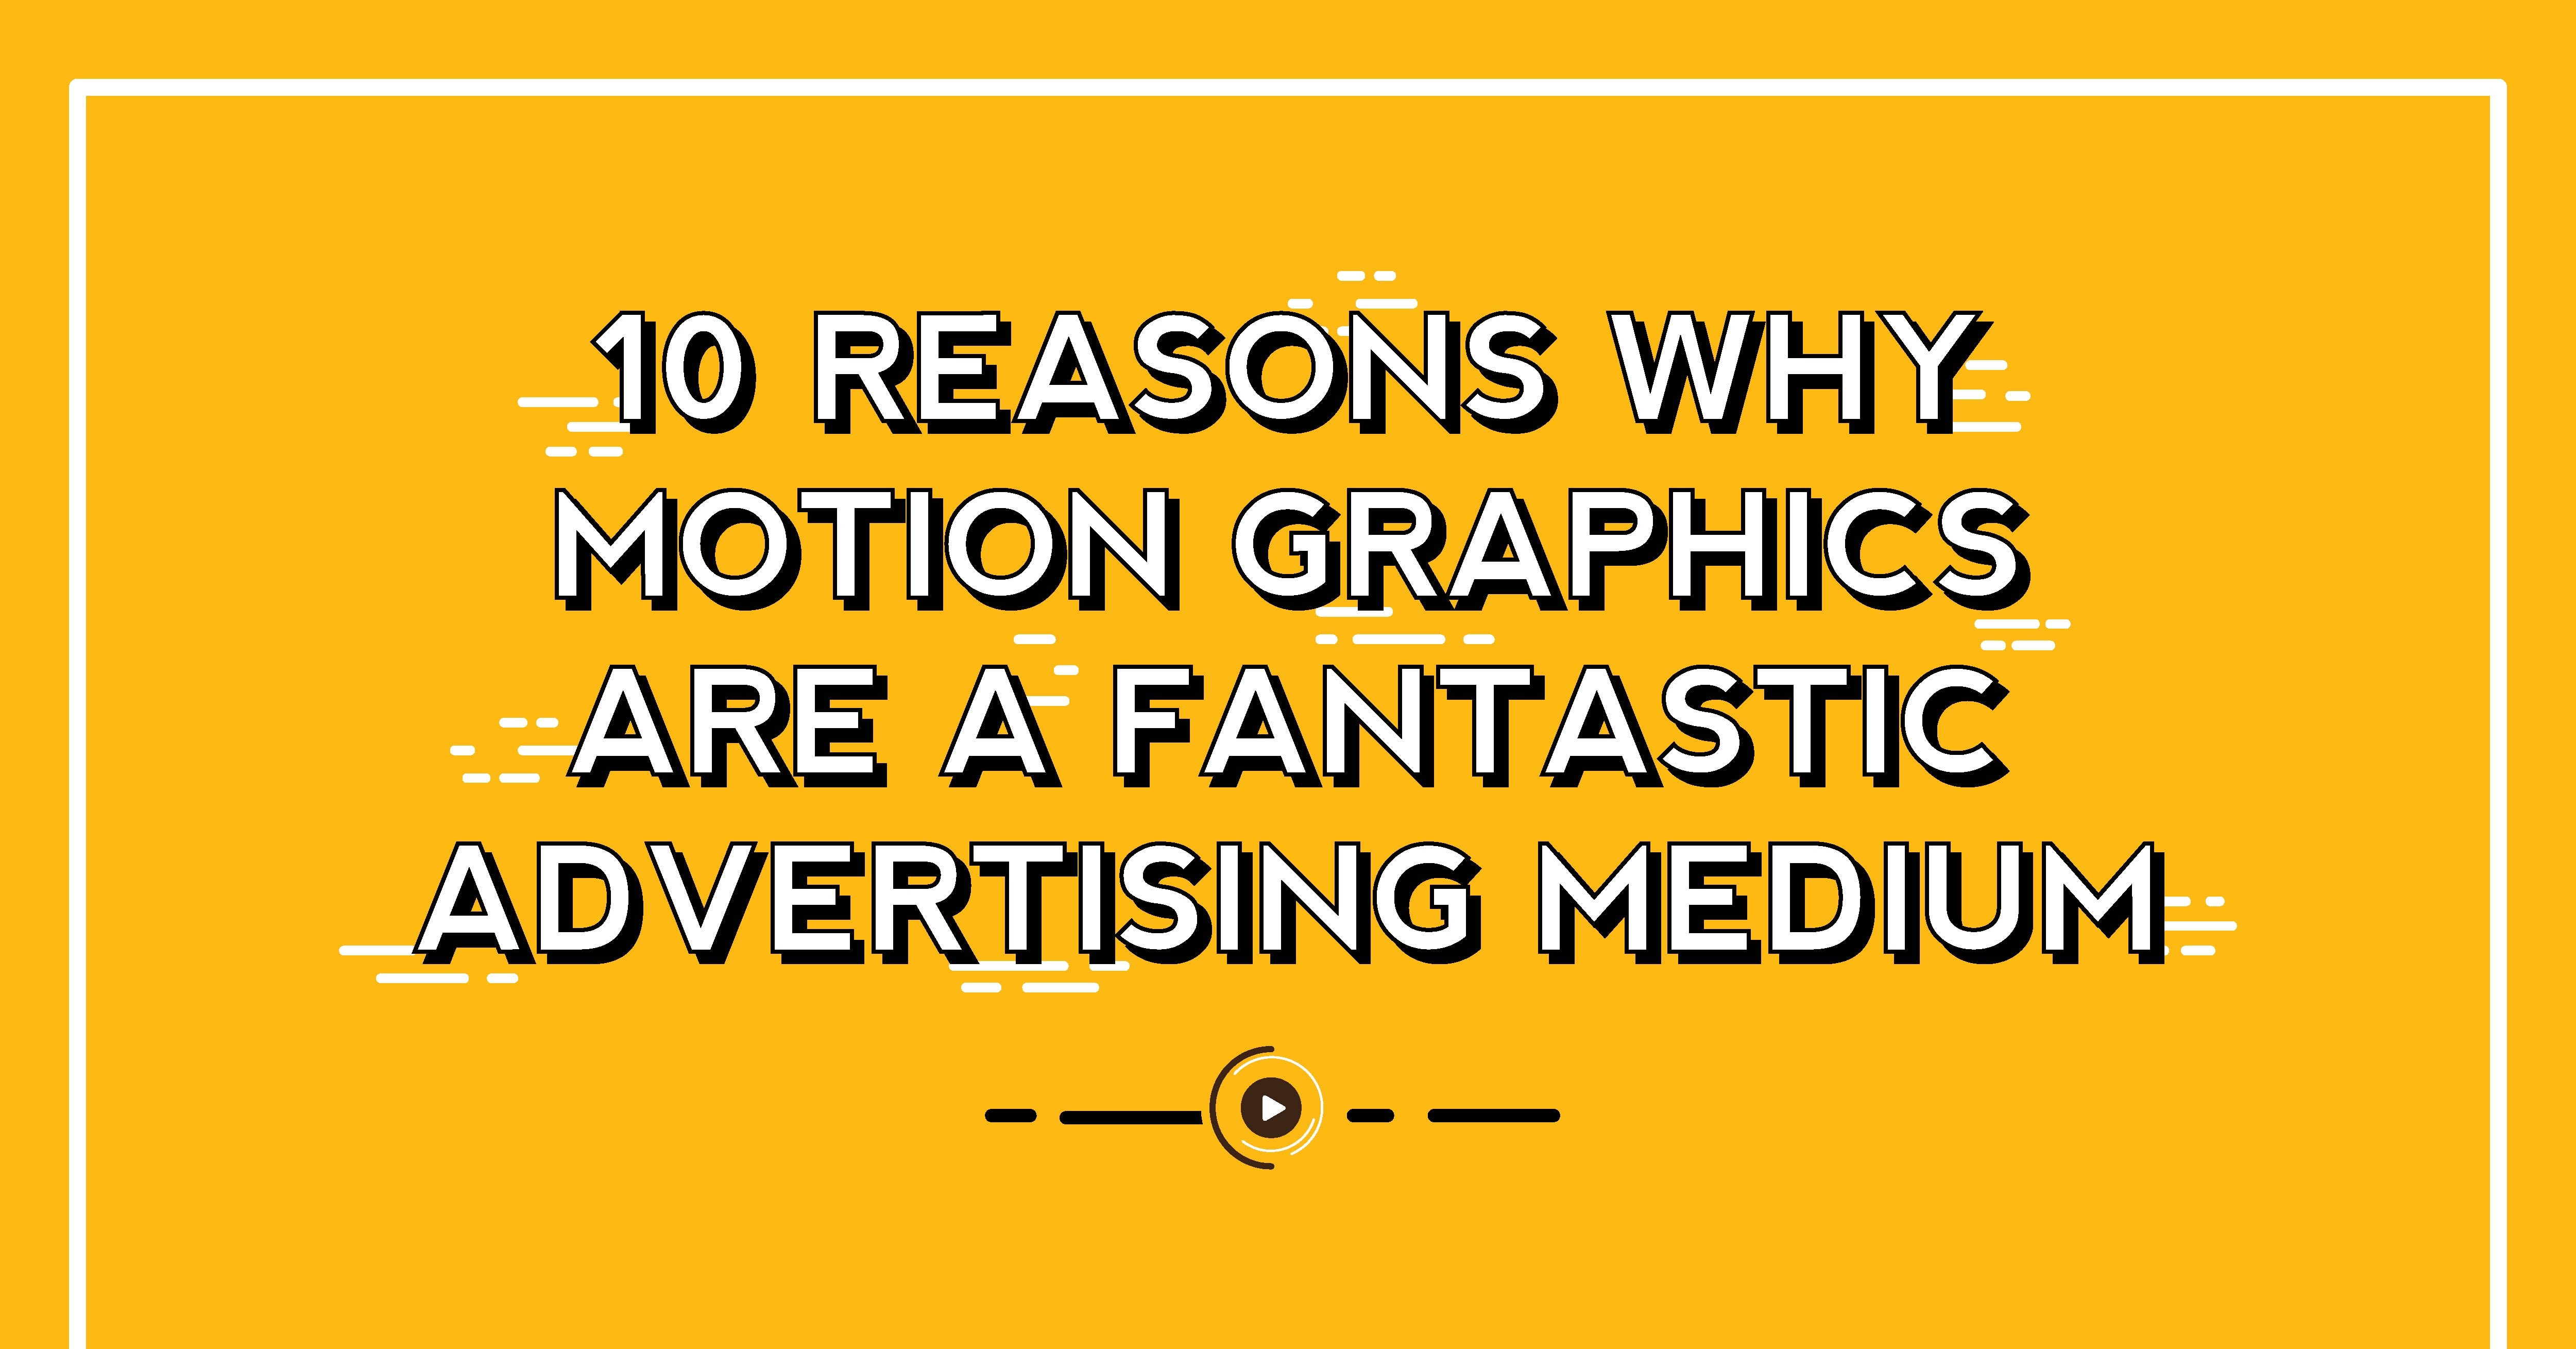 10 Reasons Why Motion Graphic Are a Fantastic Advertising Medium